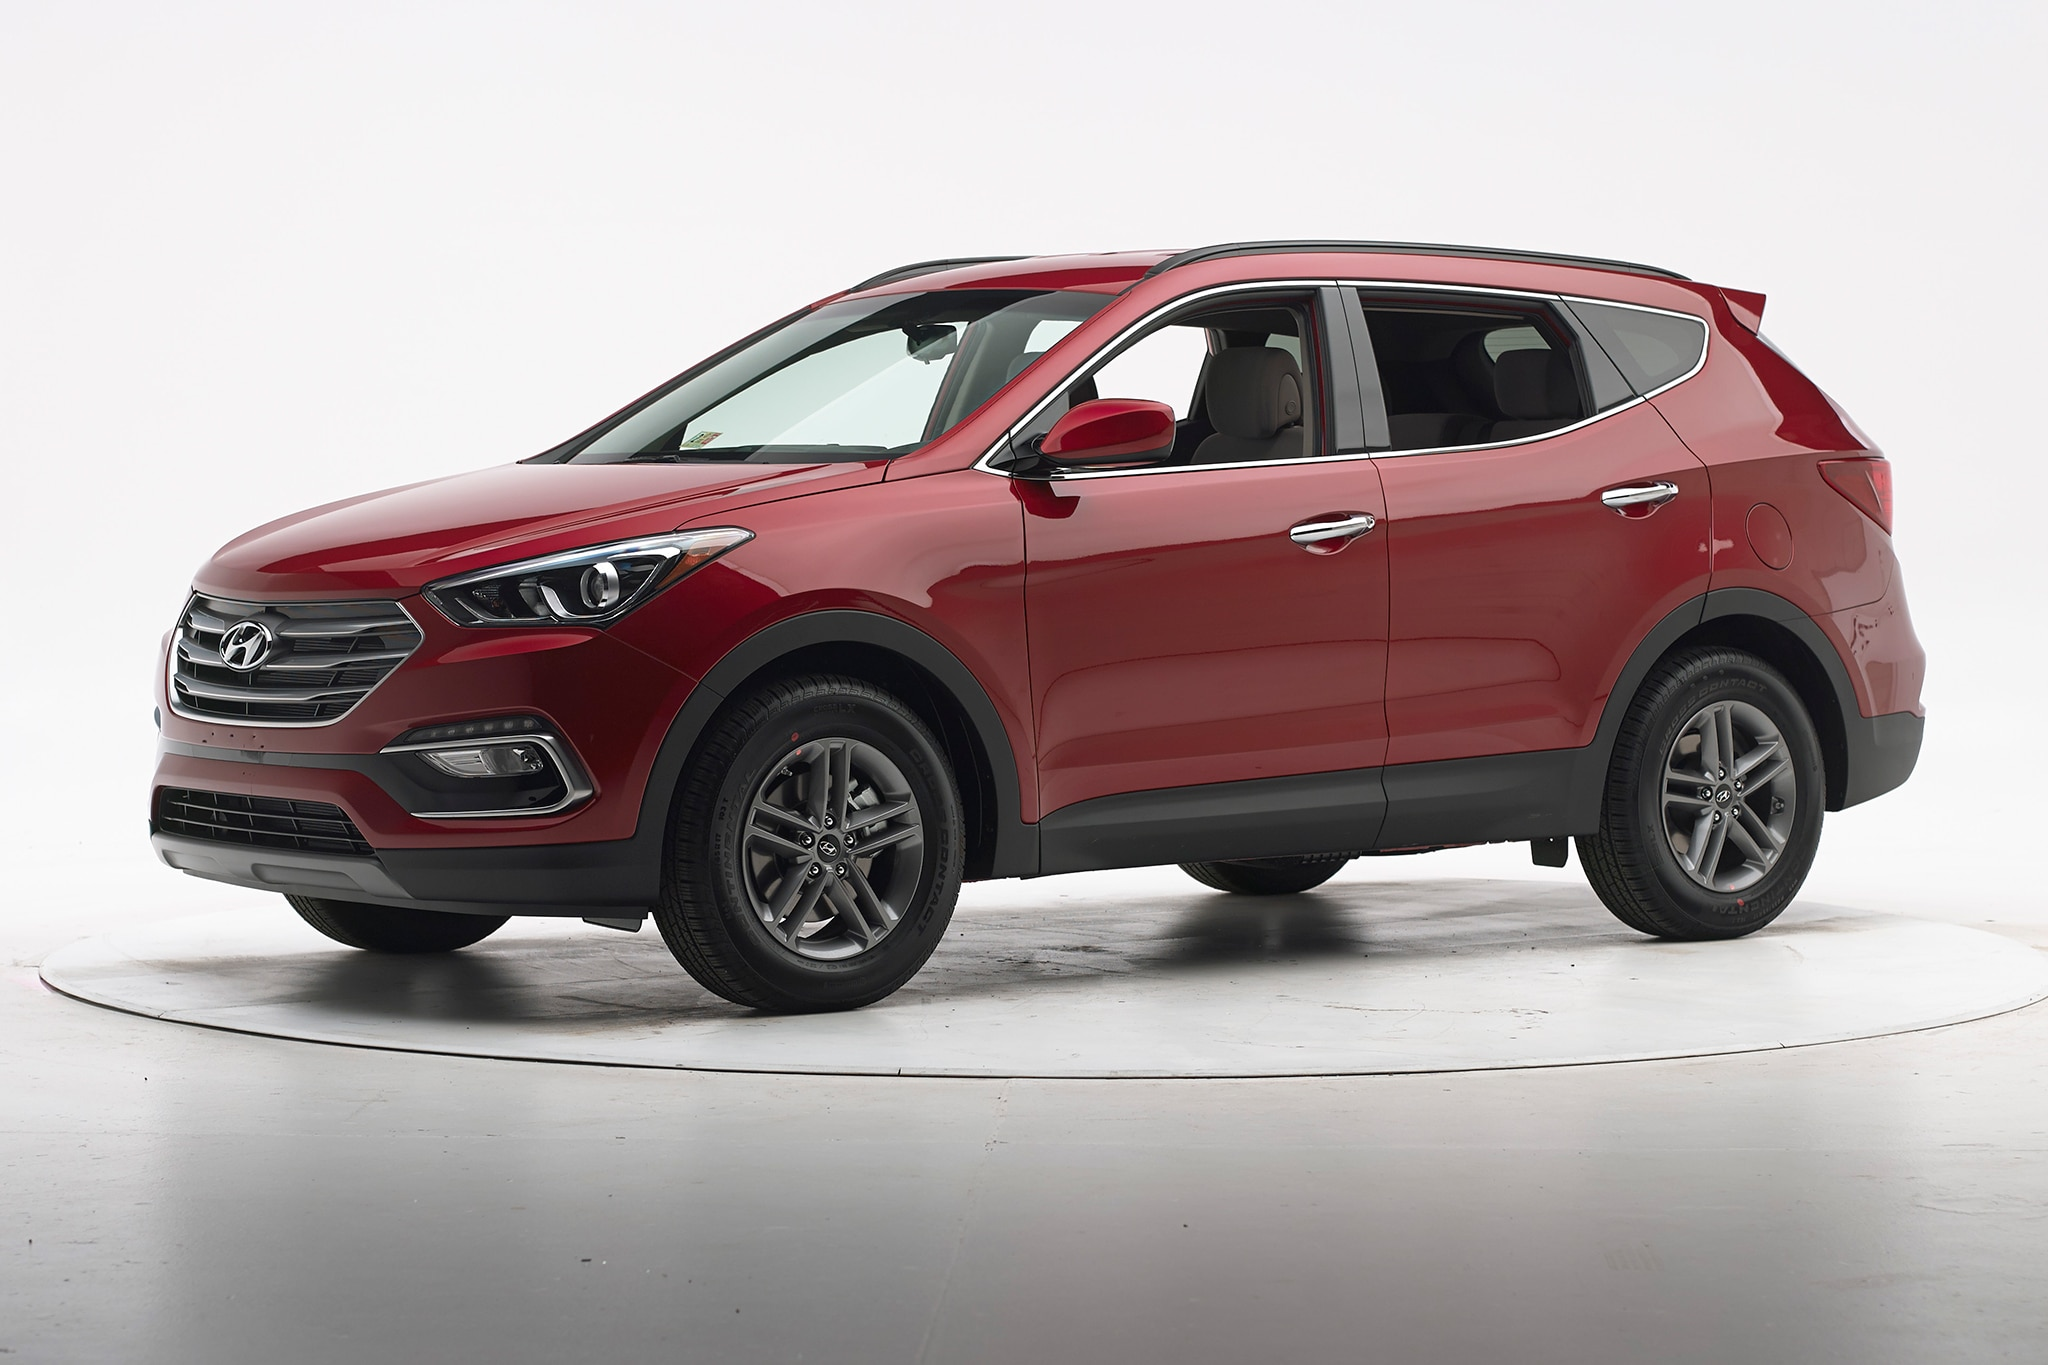 hyundai santa fe sport - photo #2